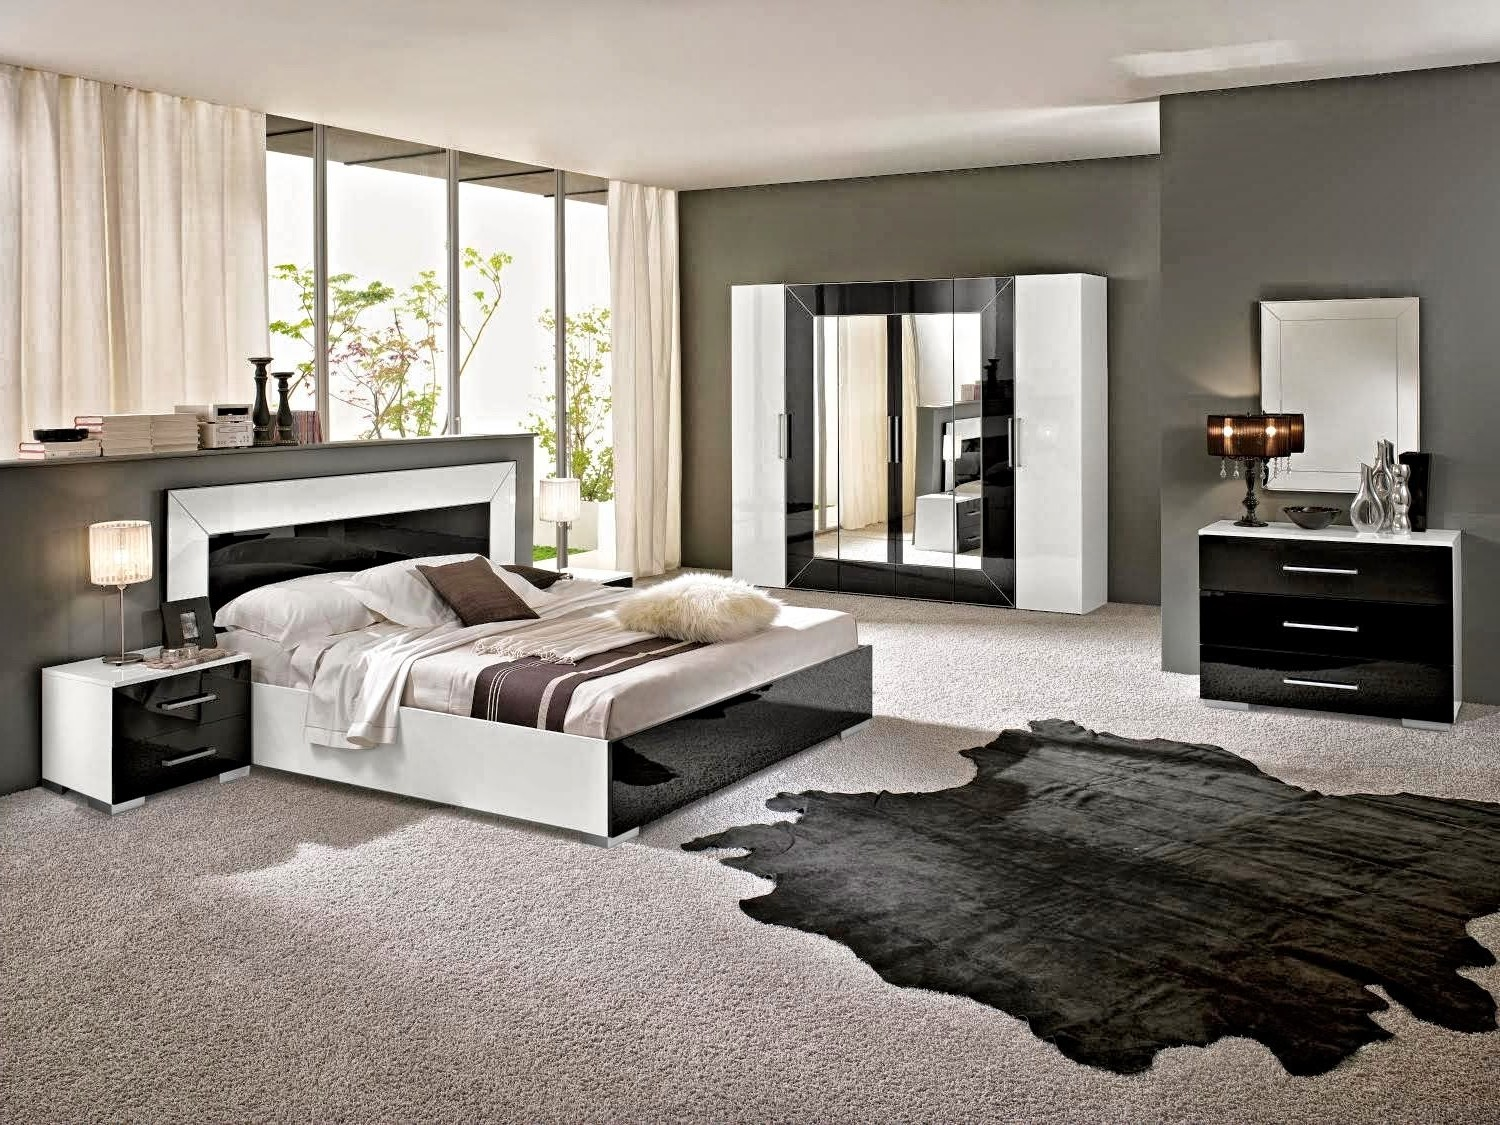 chambre a coucher style contemporain chambre id es de d coration de maison eal3rwznoy. Black Bedroom Furniture Sets. Home Design Ideas